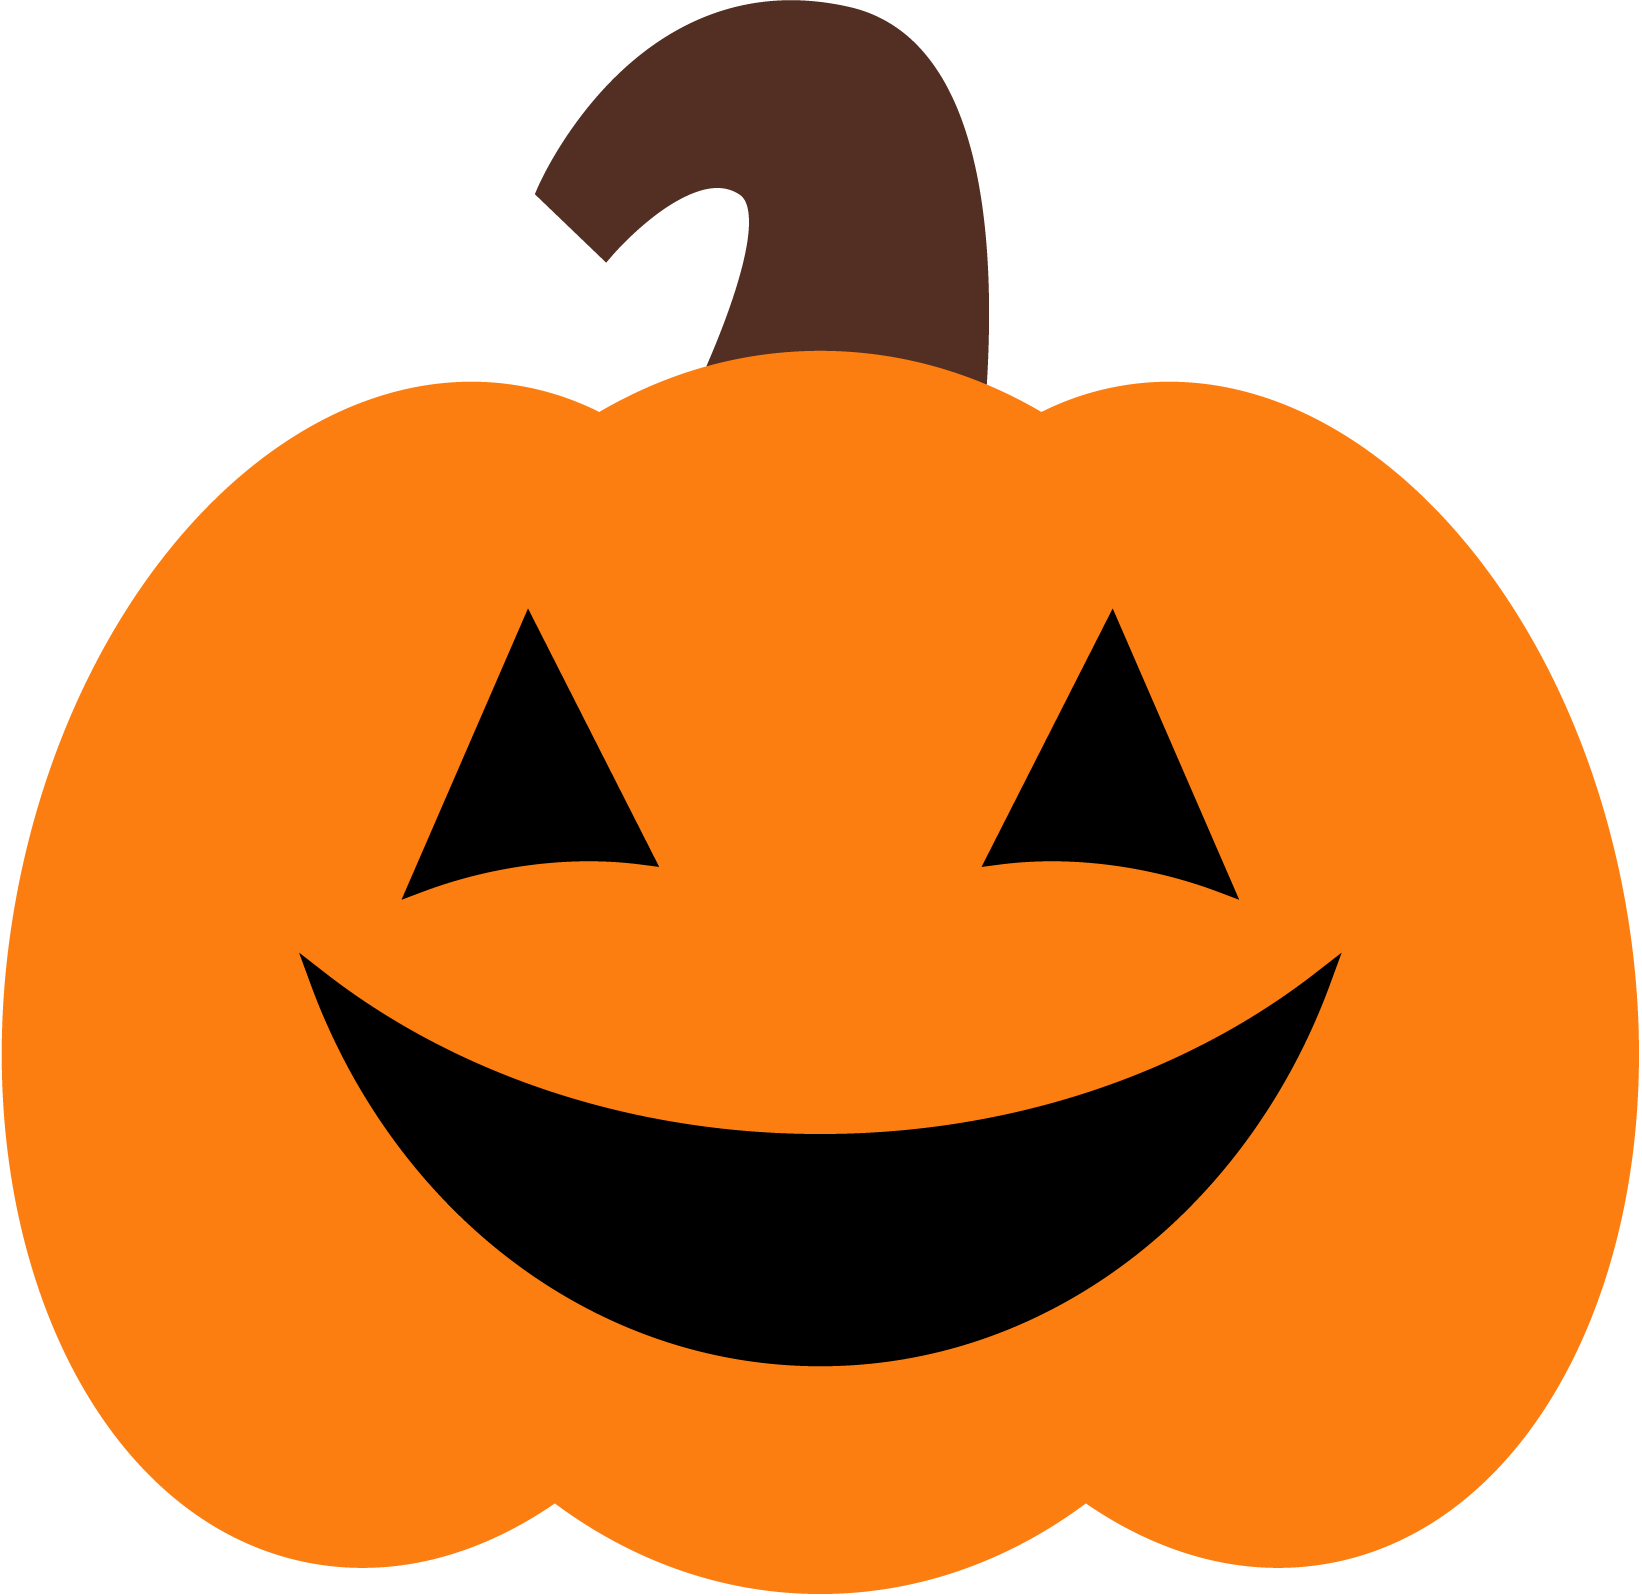 Halloween vintage scary pumpkin clipart png freeuse library Halloween Pumpkin Clipart at GetDrawings.com | Free for personal use ... png freeuse library